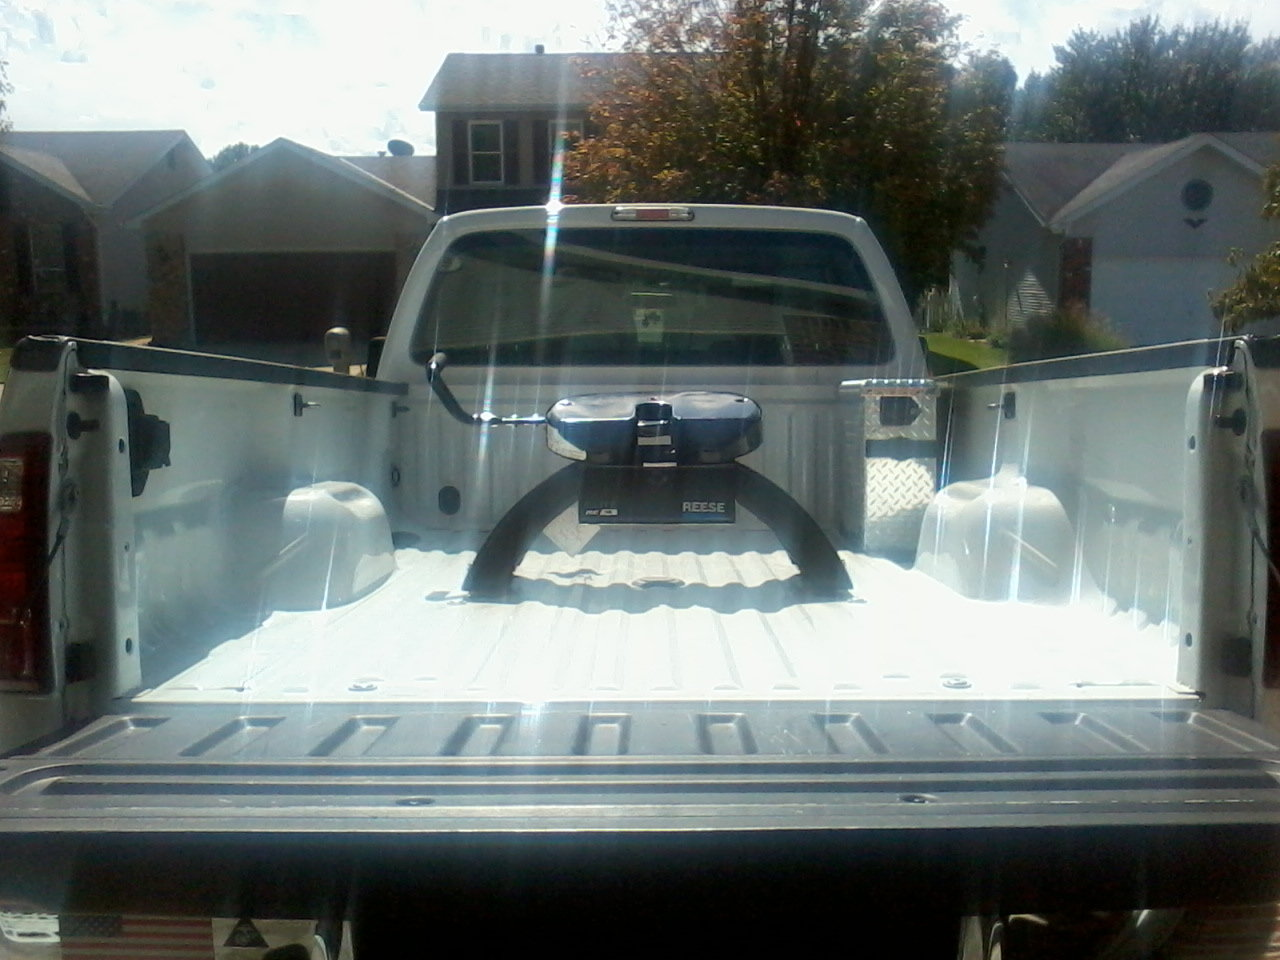 62 Gas Towing New 5th Wheel Report Ford Truck Enthusiasts Forums 2012 F250 Fifth Trailer Plug Of Our Purchase Being Towed By F350 4x4 Super Cab Long Bed W 430 Rear Specifications Brochure Can Tow 15000 Lb